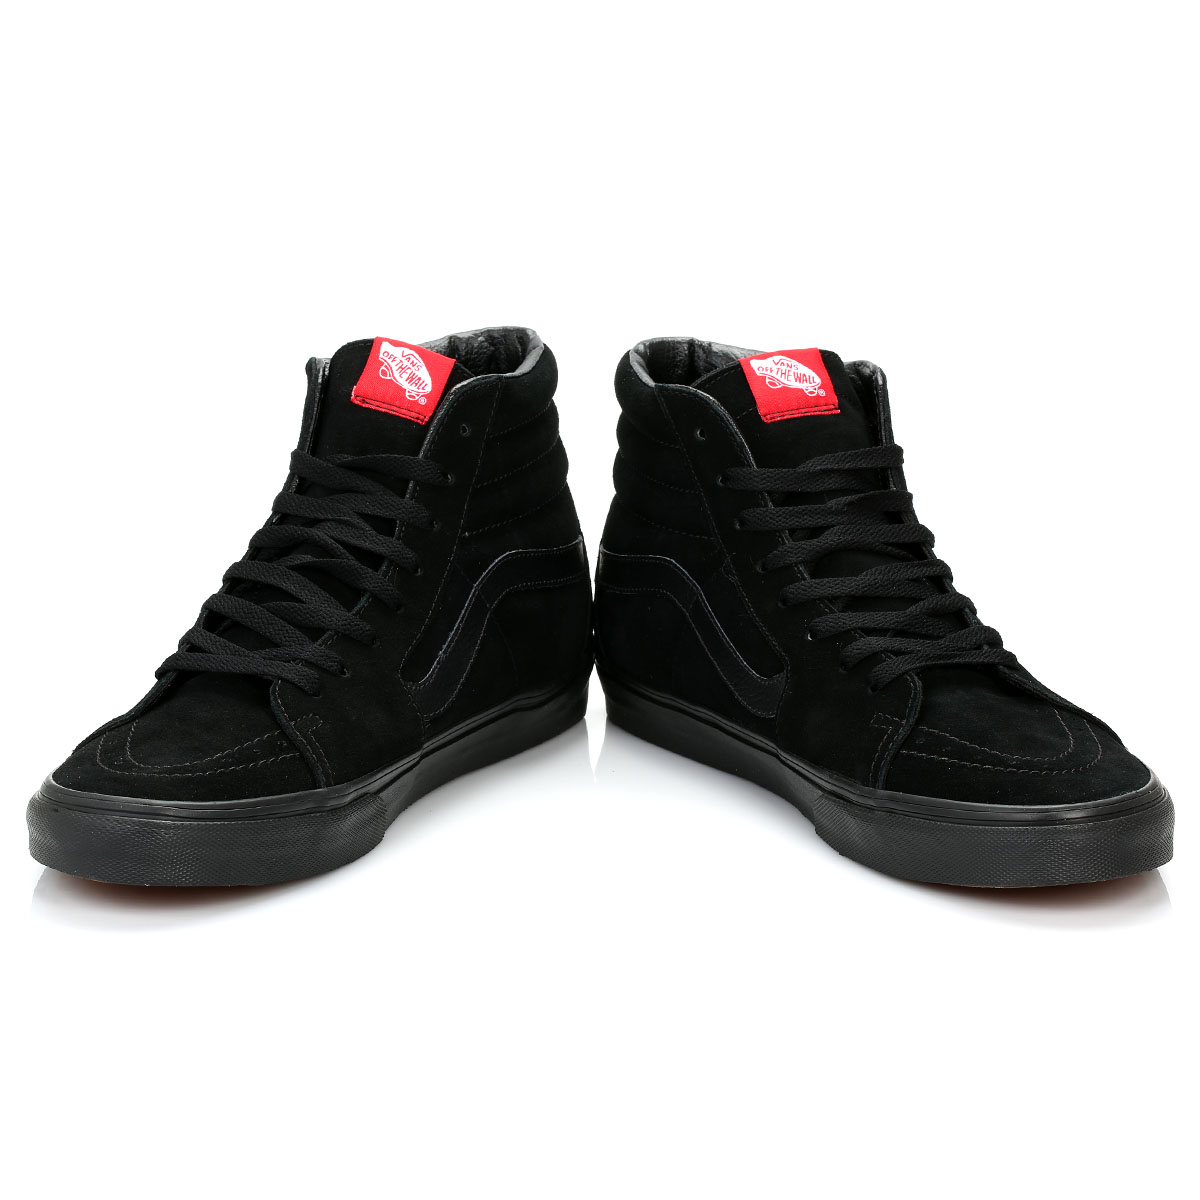 Vans Men High Tops Black SK8 Hi Suede Trainers LaceUp ...